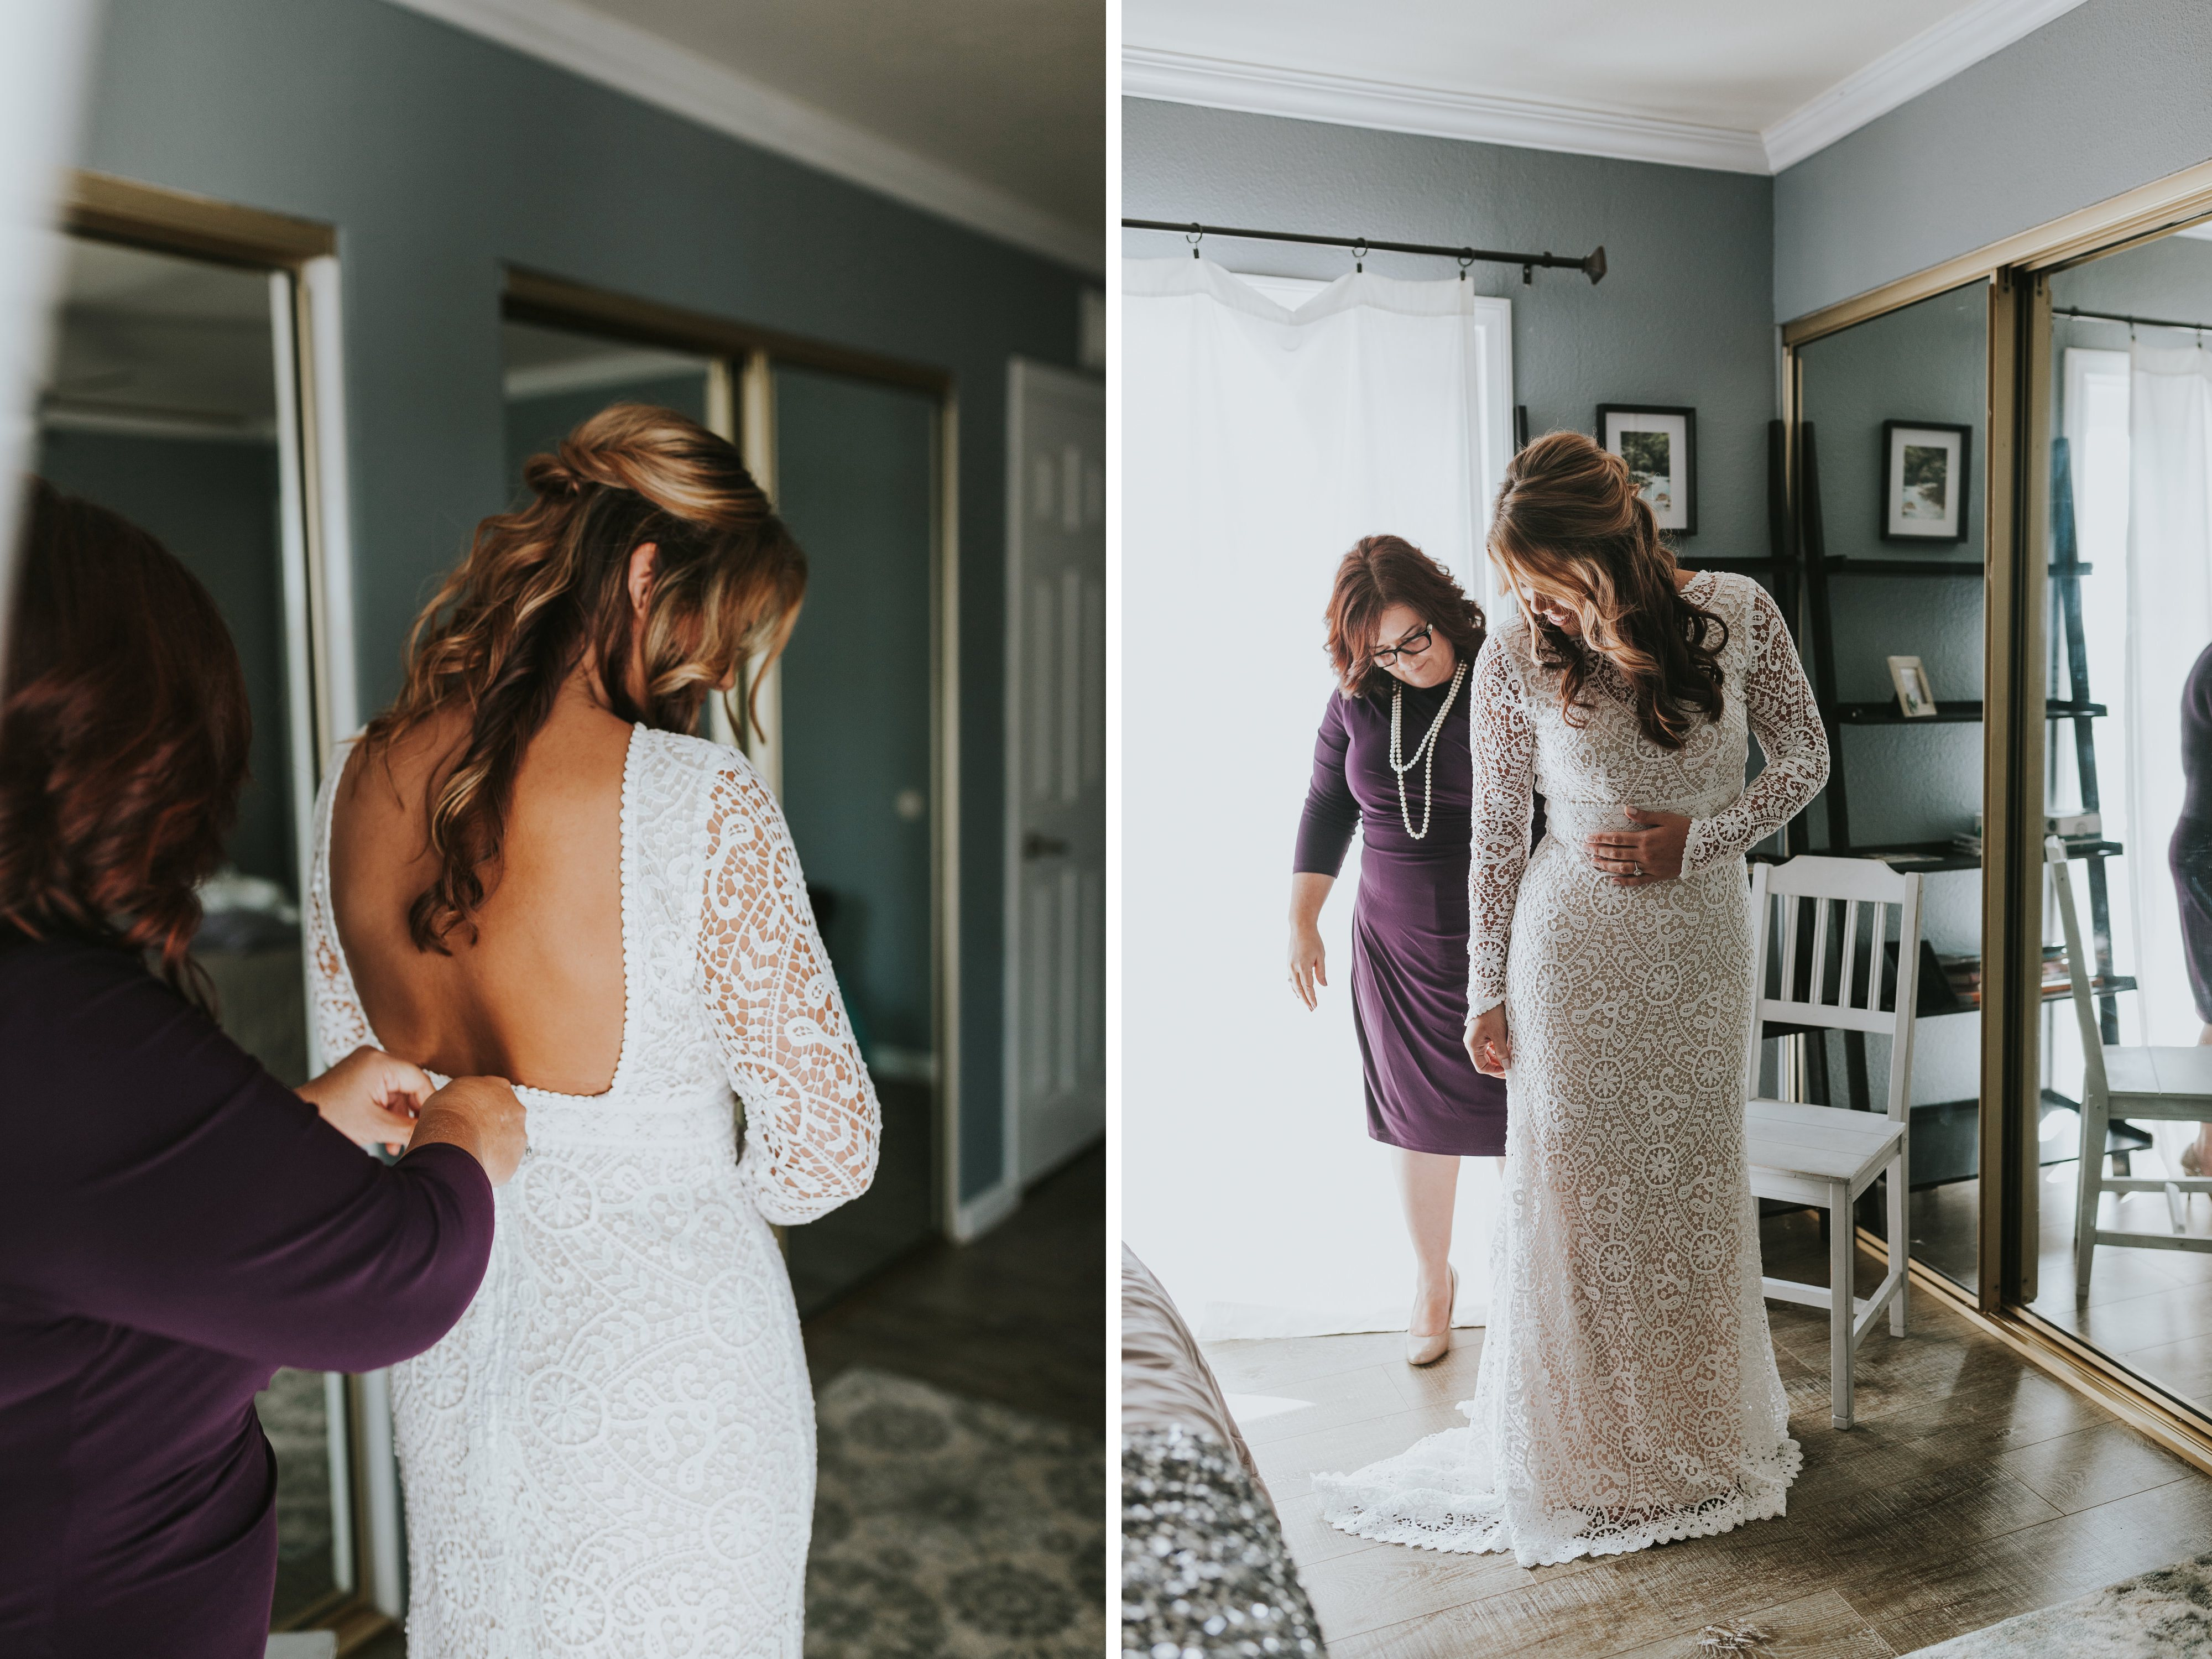 bride getting her dress on, mother of bride zipping up dress